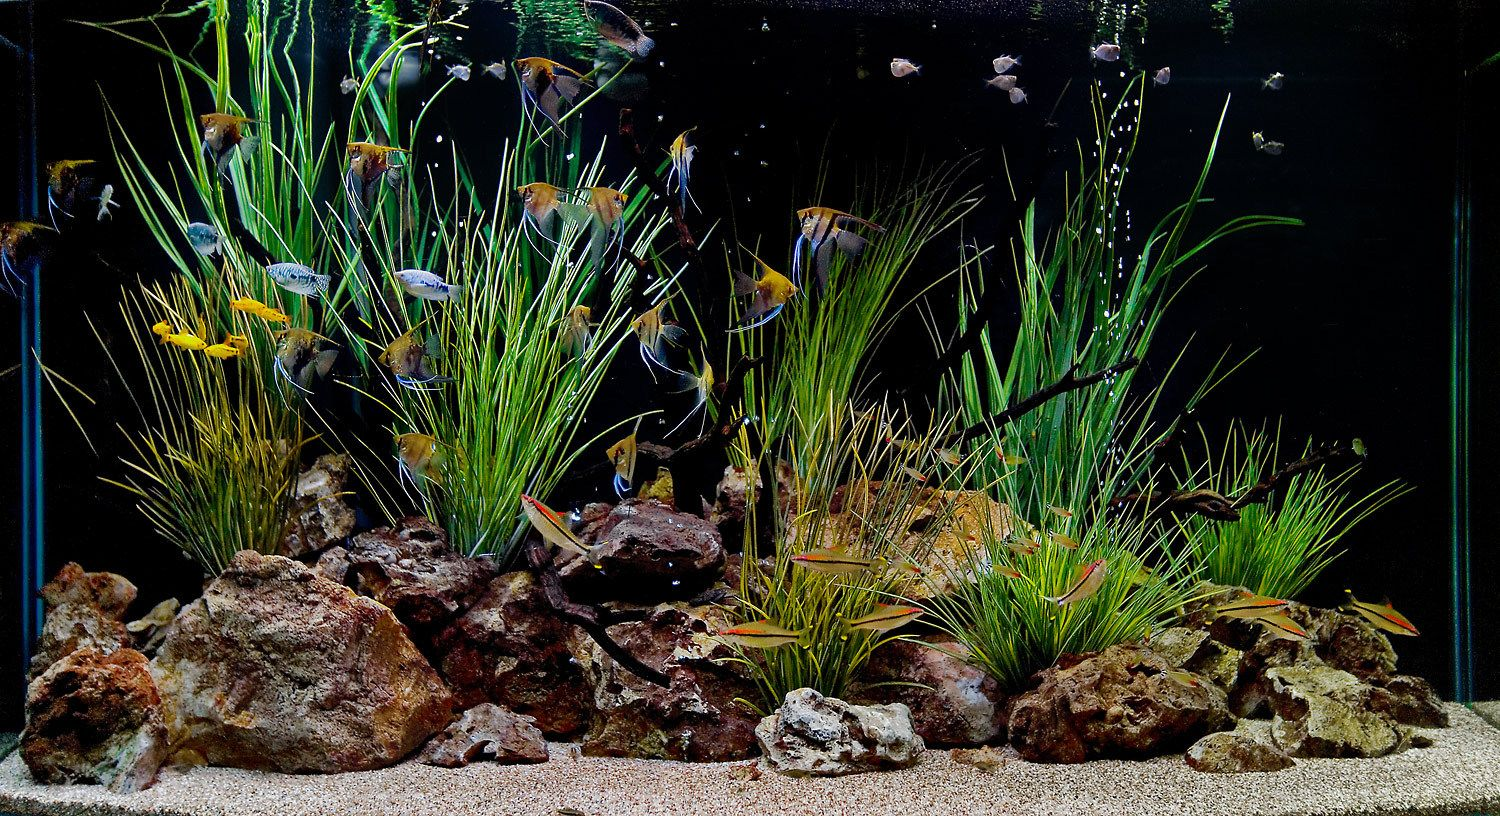 freshwater aquarium design ideas aquarium design group custom aquarium design installation and service - Freshwater Aquarium Design Ideas